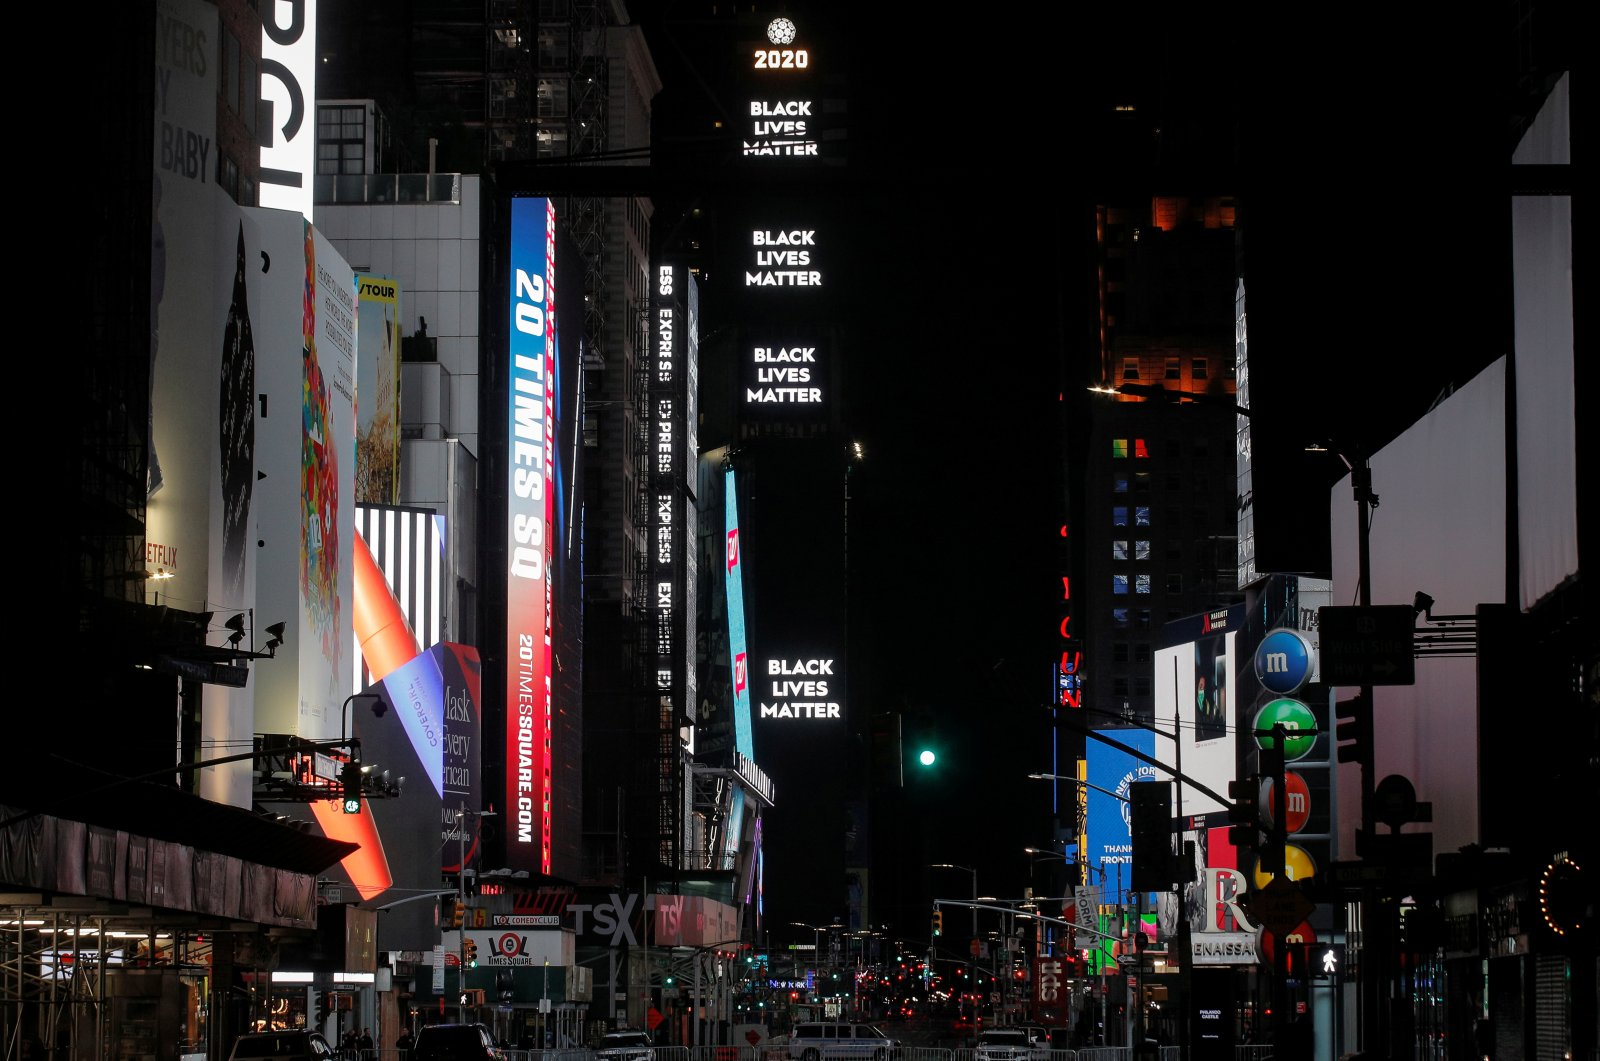 """Barricades and New York City Police vehicles block the entrance to Times Square, as a sign displays """"Black Lives Matter"""" after a curfew due to protests against the death in Minneapolis police custody of George Floyd, after curfew in the Manhattan borough of New York City, U.S., June 3, 2020. (Reuters Photo)"""